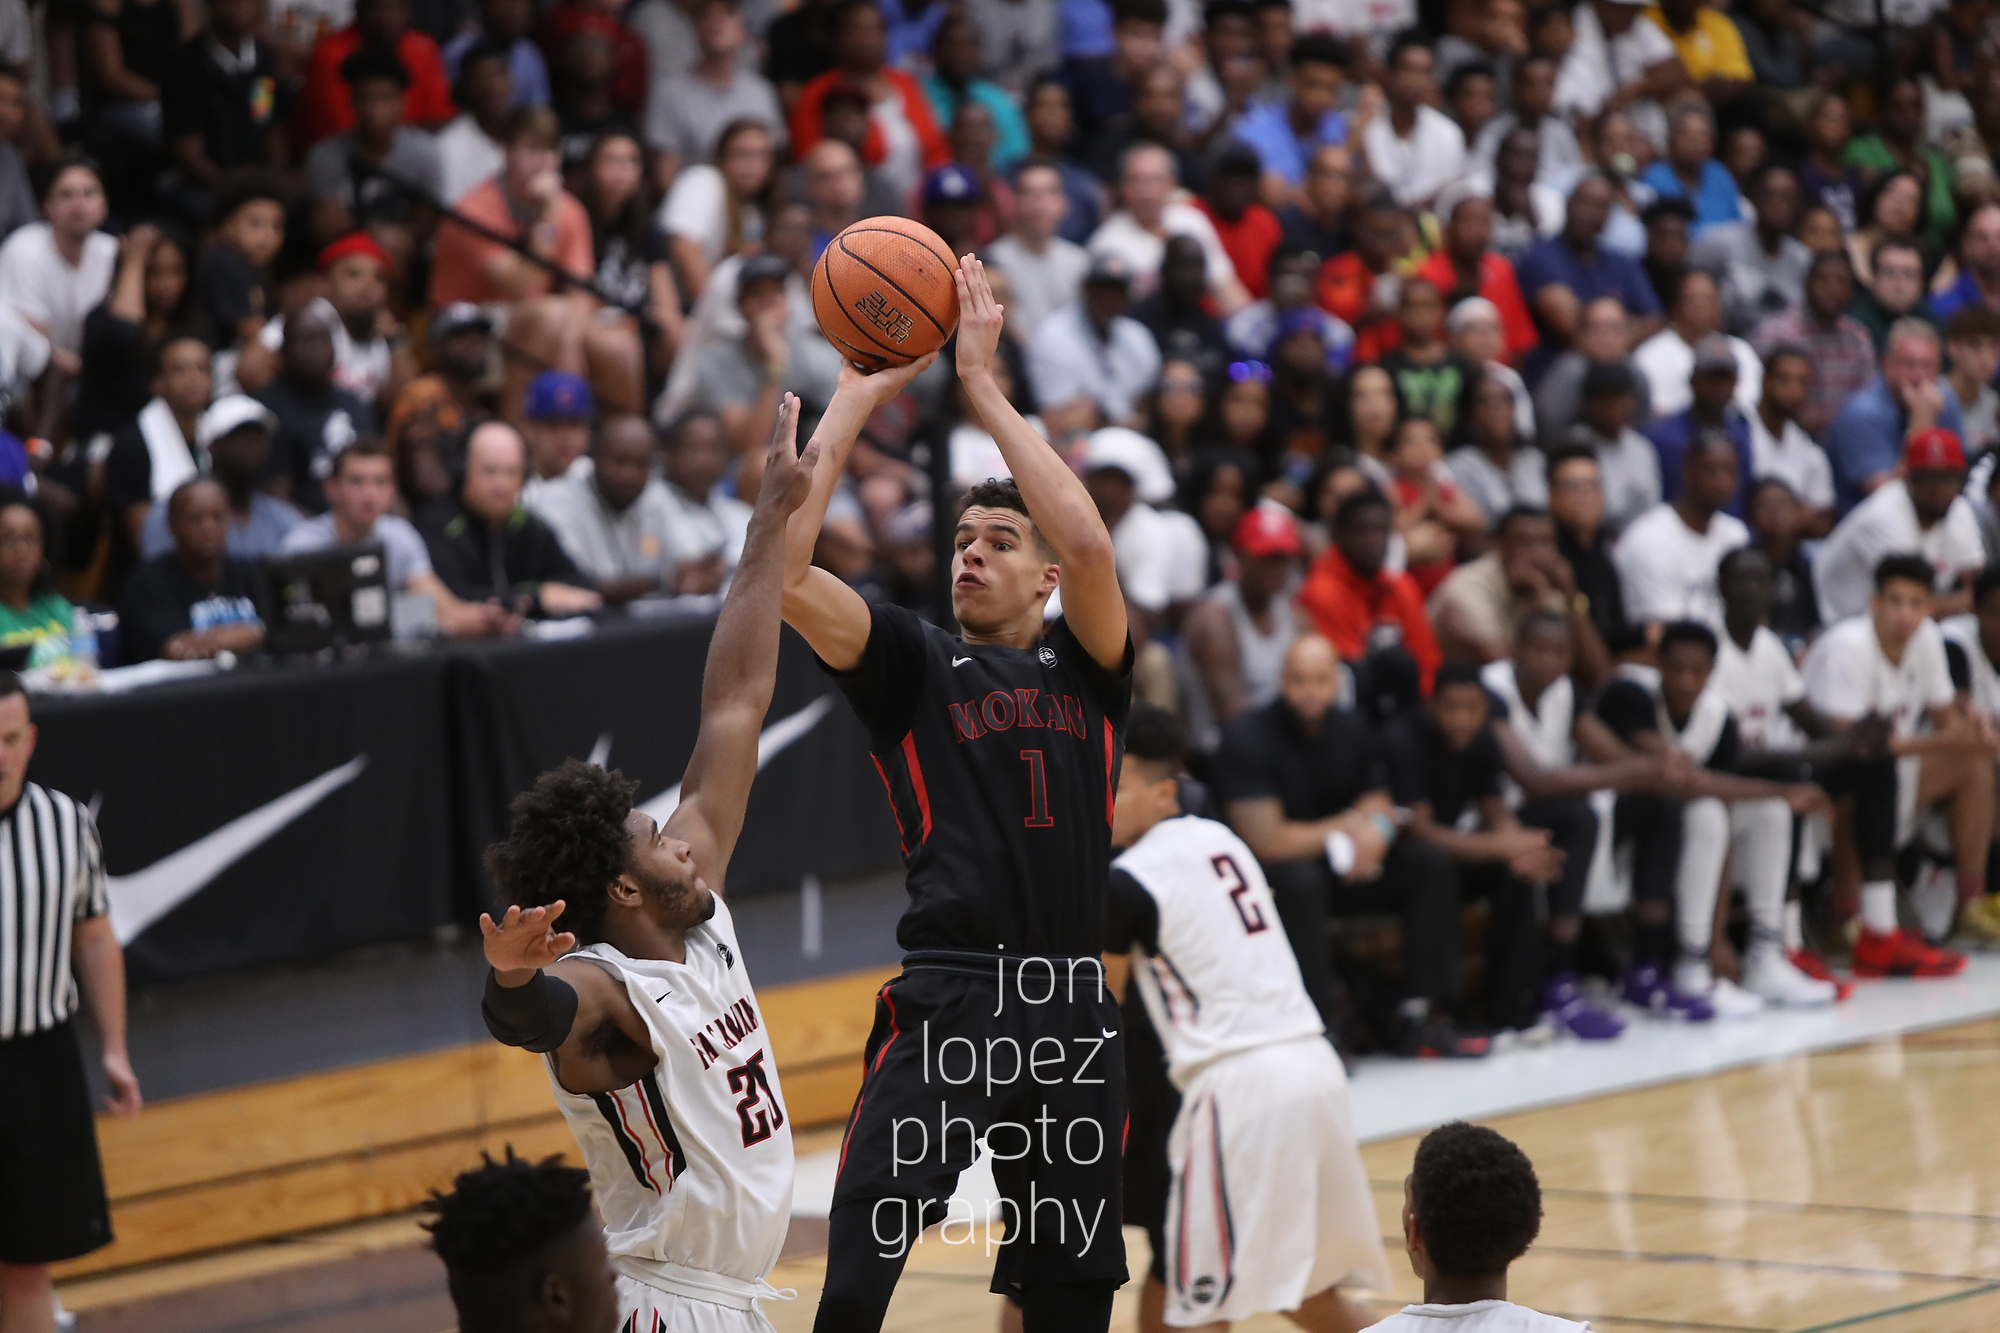 Mokan Elite's Michael Porter was possibly the EYBL's most complete player. Here he pulls up for a jumper over the outstretched hands of the defense en route to winning Peach Jam 2016.